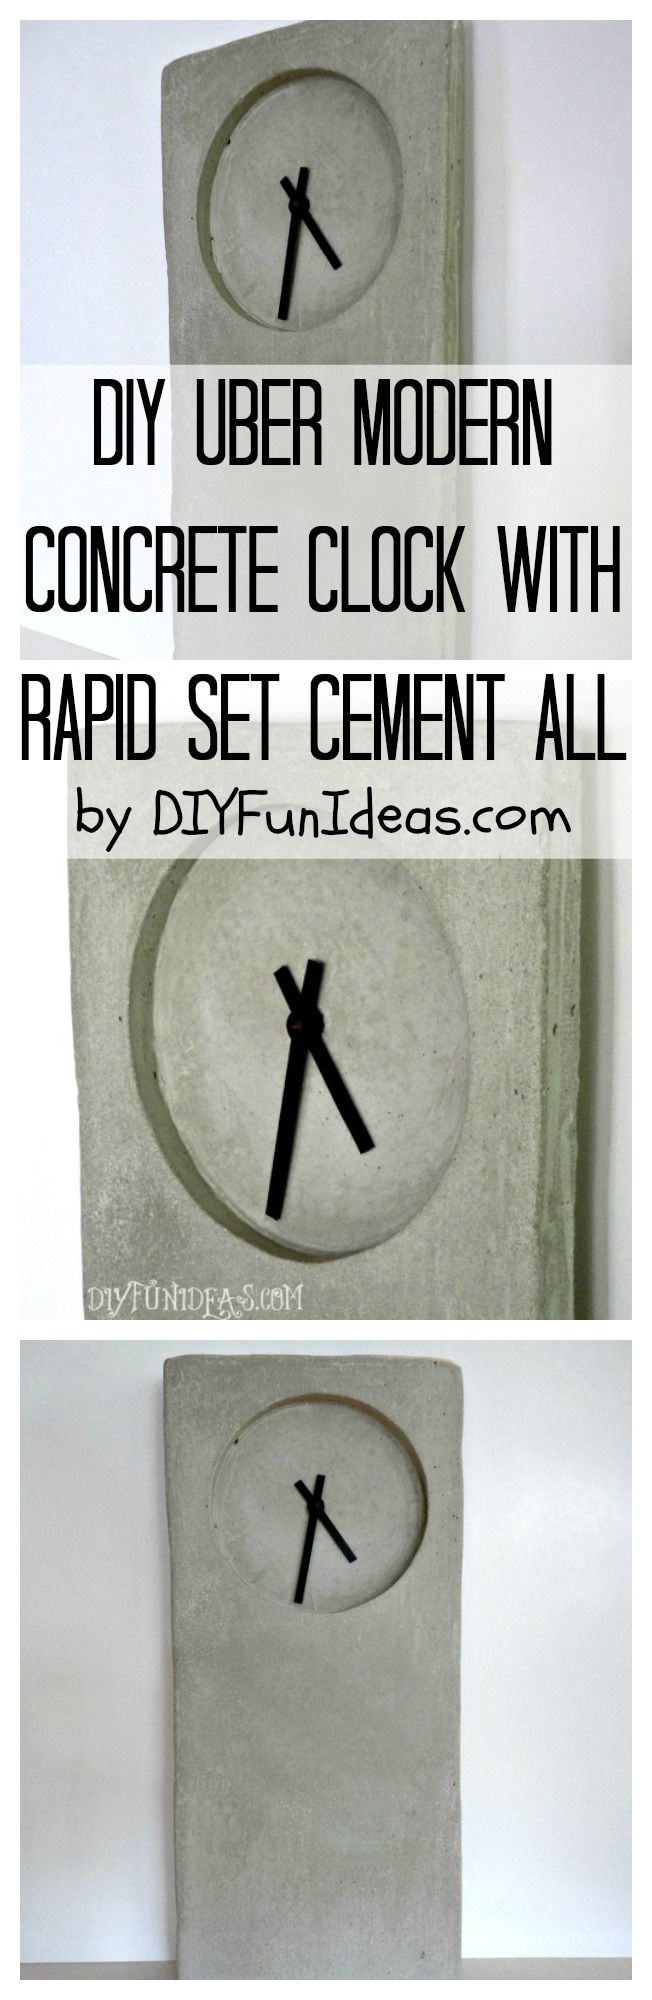 MODERN INDUSTRIAL #DIY #CONCRETE CLOCK TUTORIAL.......Plus tons more fun DIYs at DIYFunIdeas.com